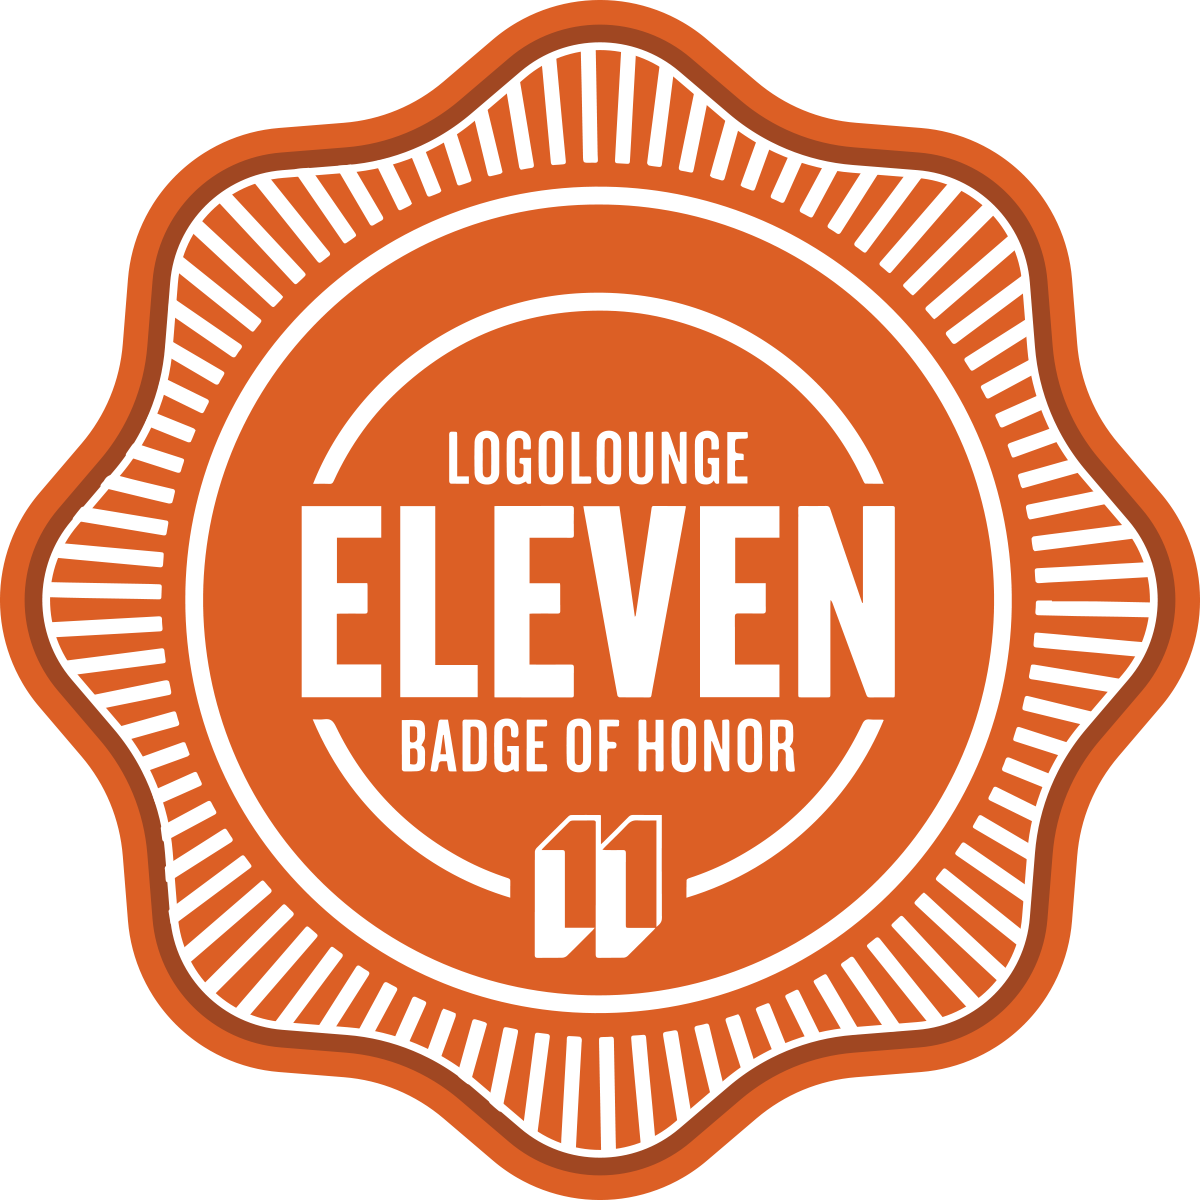 LogoLounge 11 - Badge of Honor